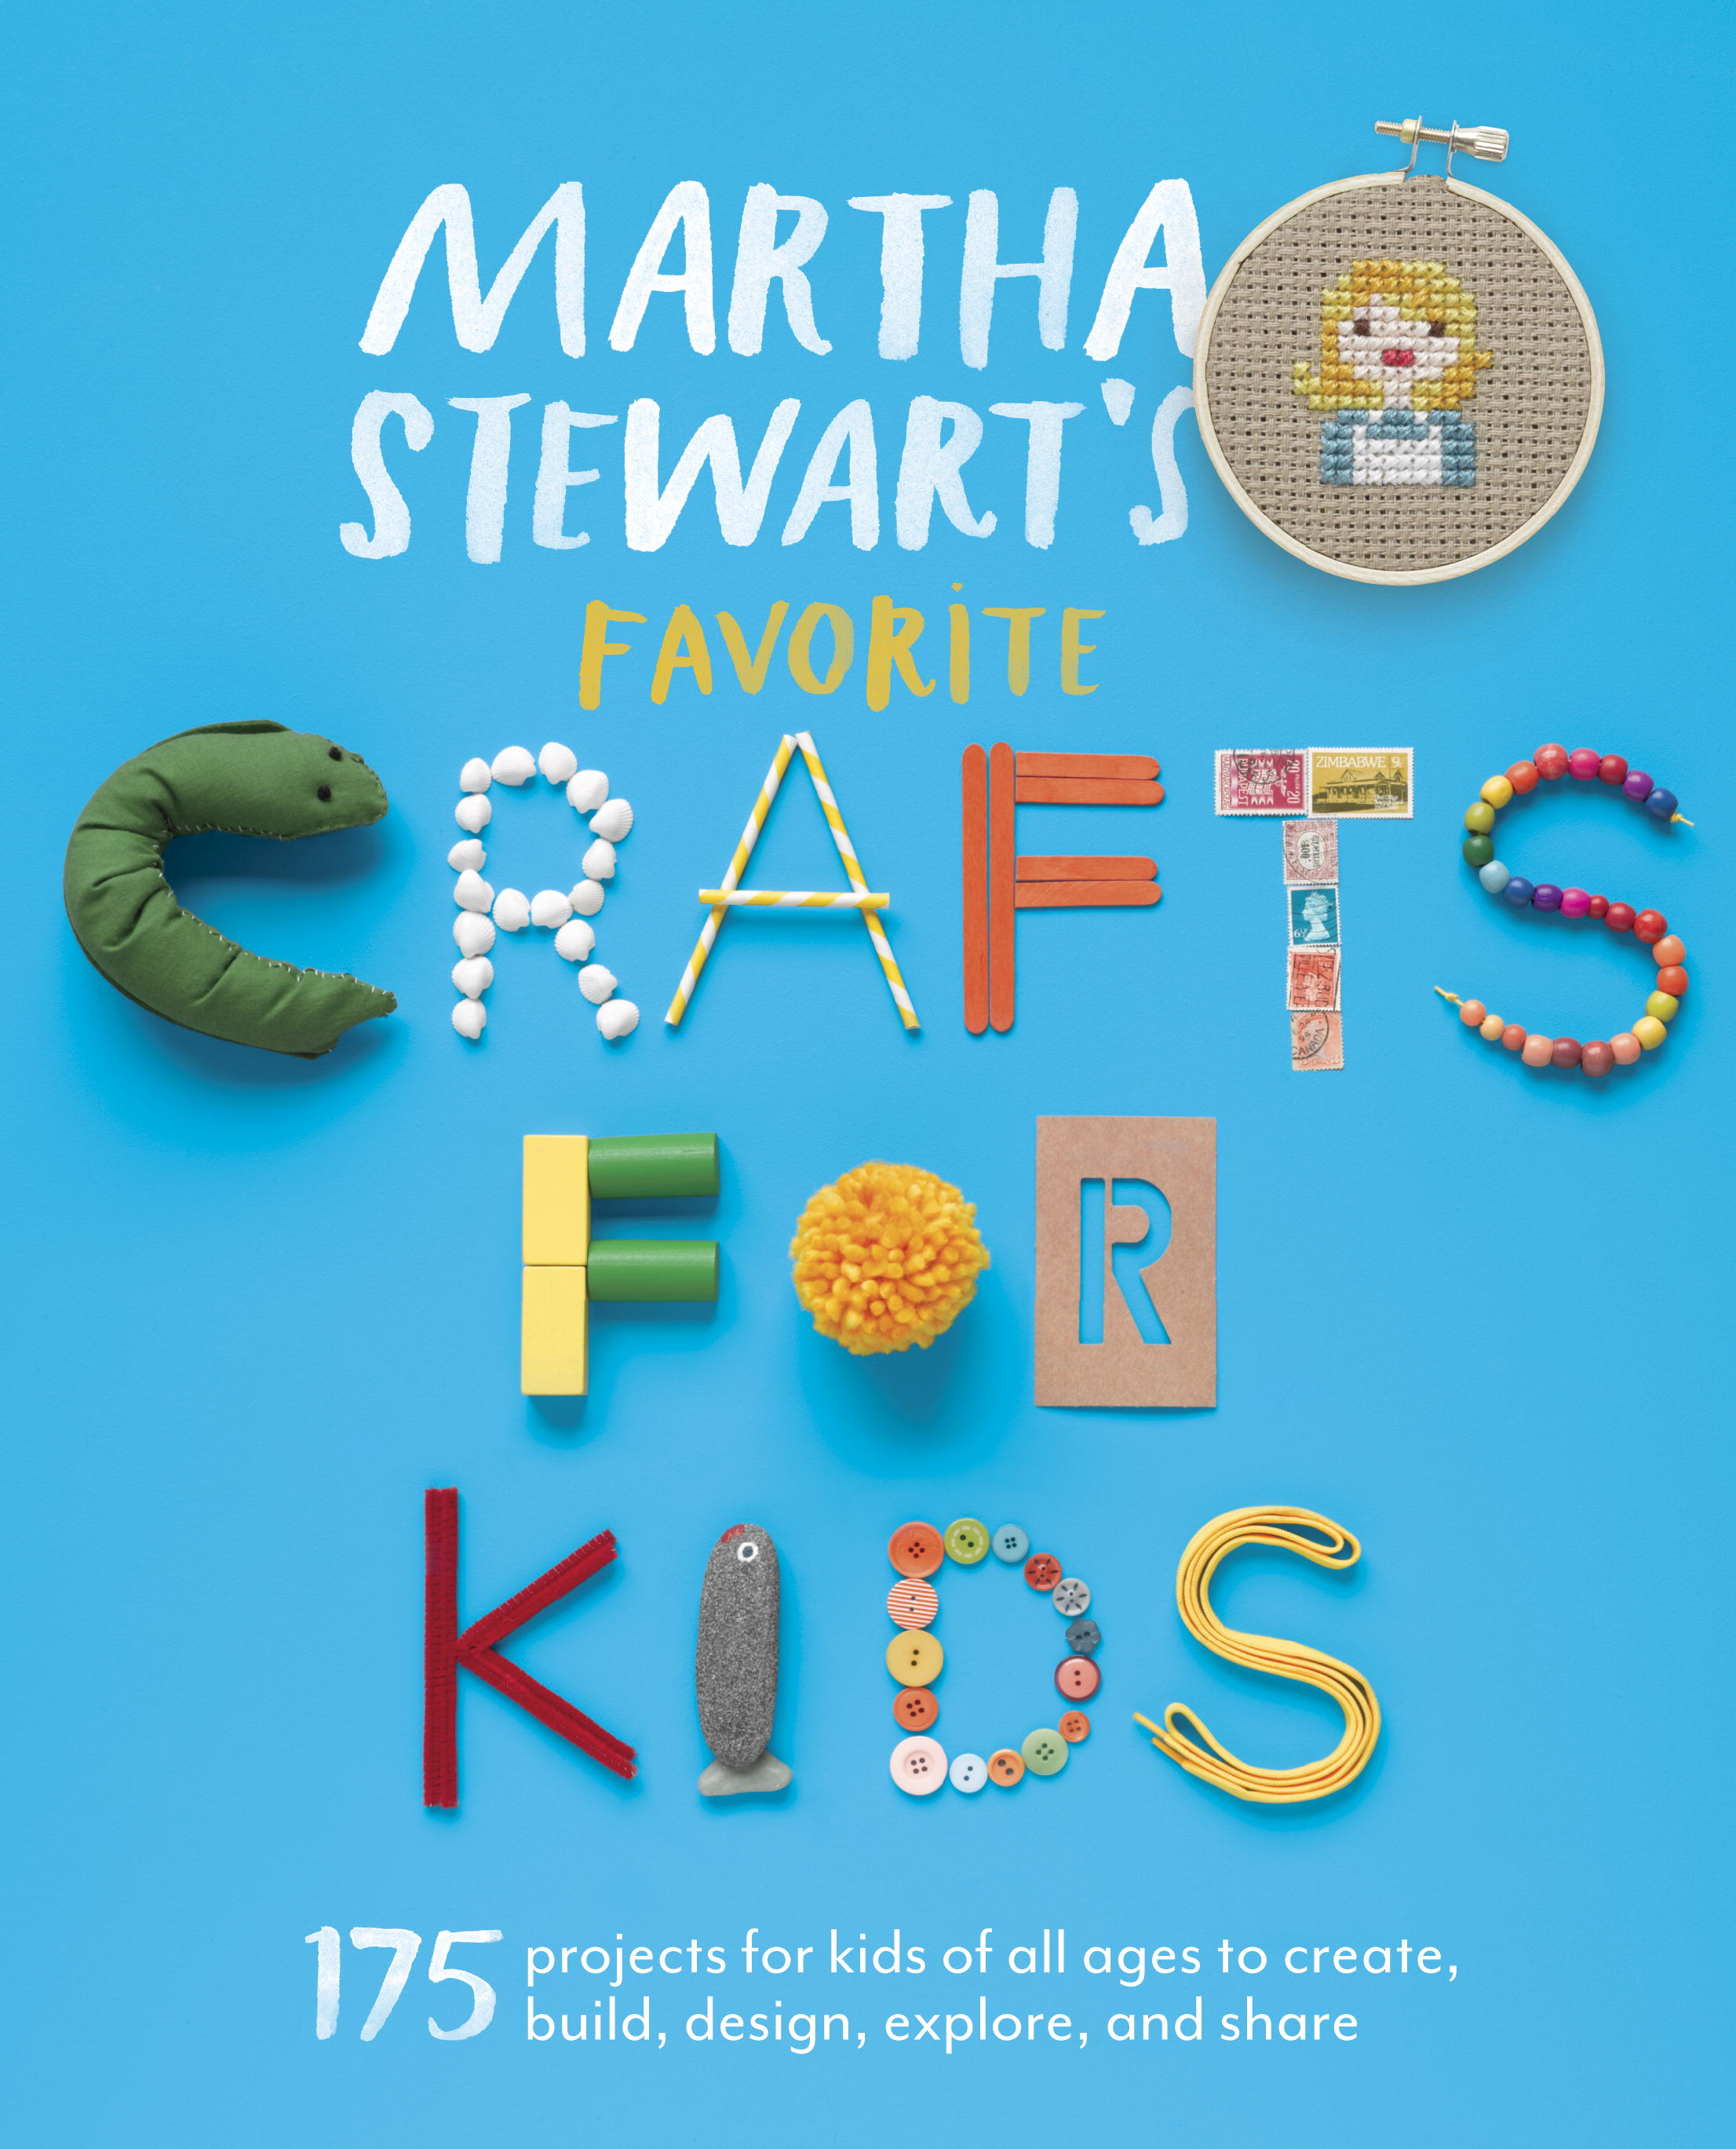 Last Minute Summer Arts And Crafts Ideas From Martha Stewart Savvy